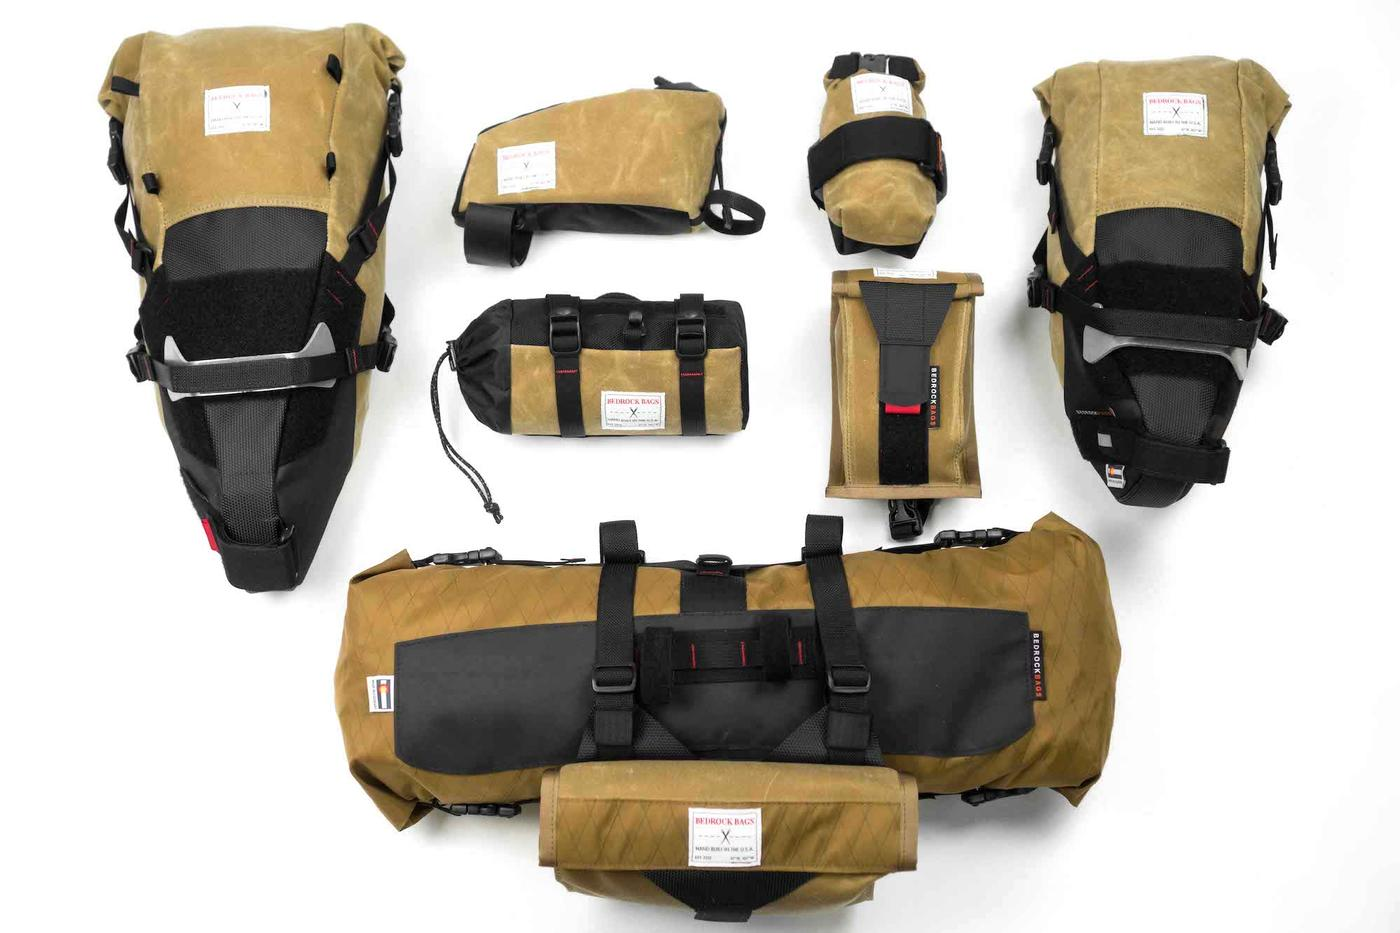 Bedrock Bags' Limited Edition Spring 2018 Waxed Canvas Bikepacking Bags